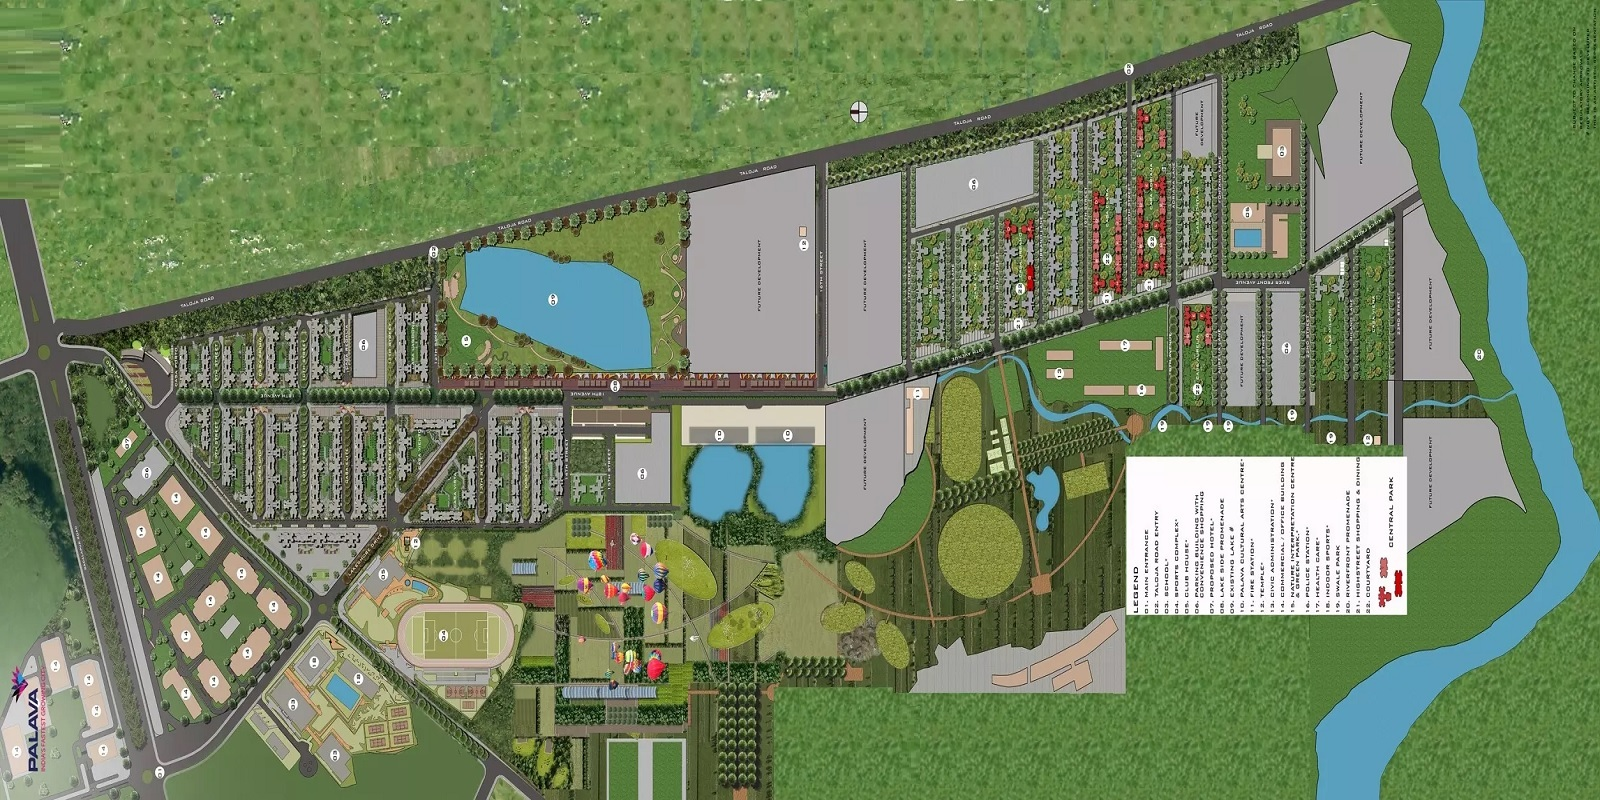 lodha the centre project master plan image1